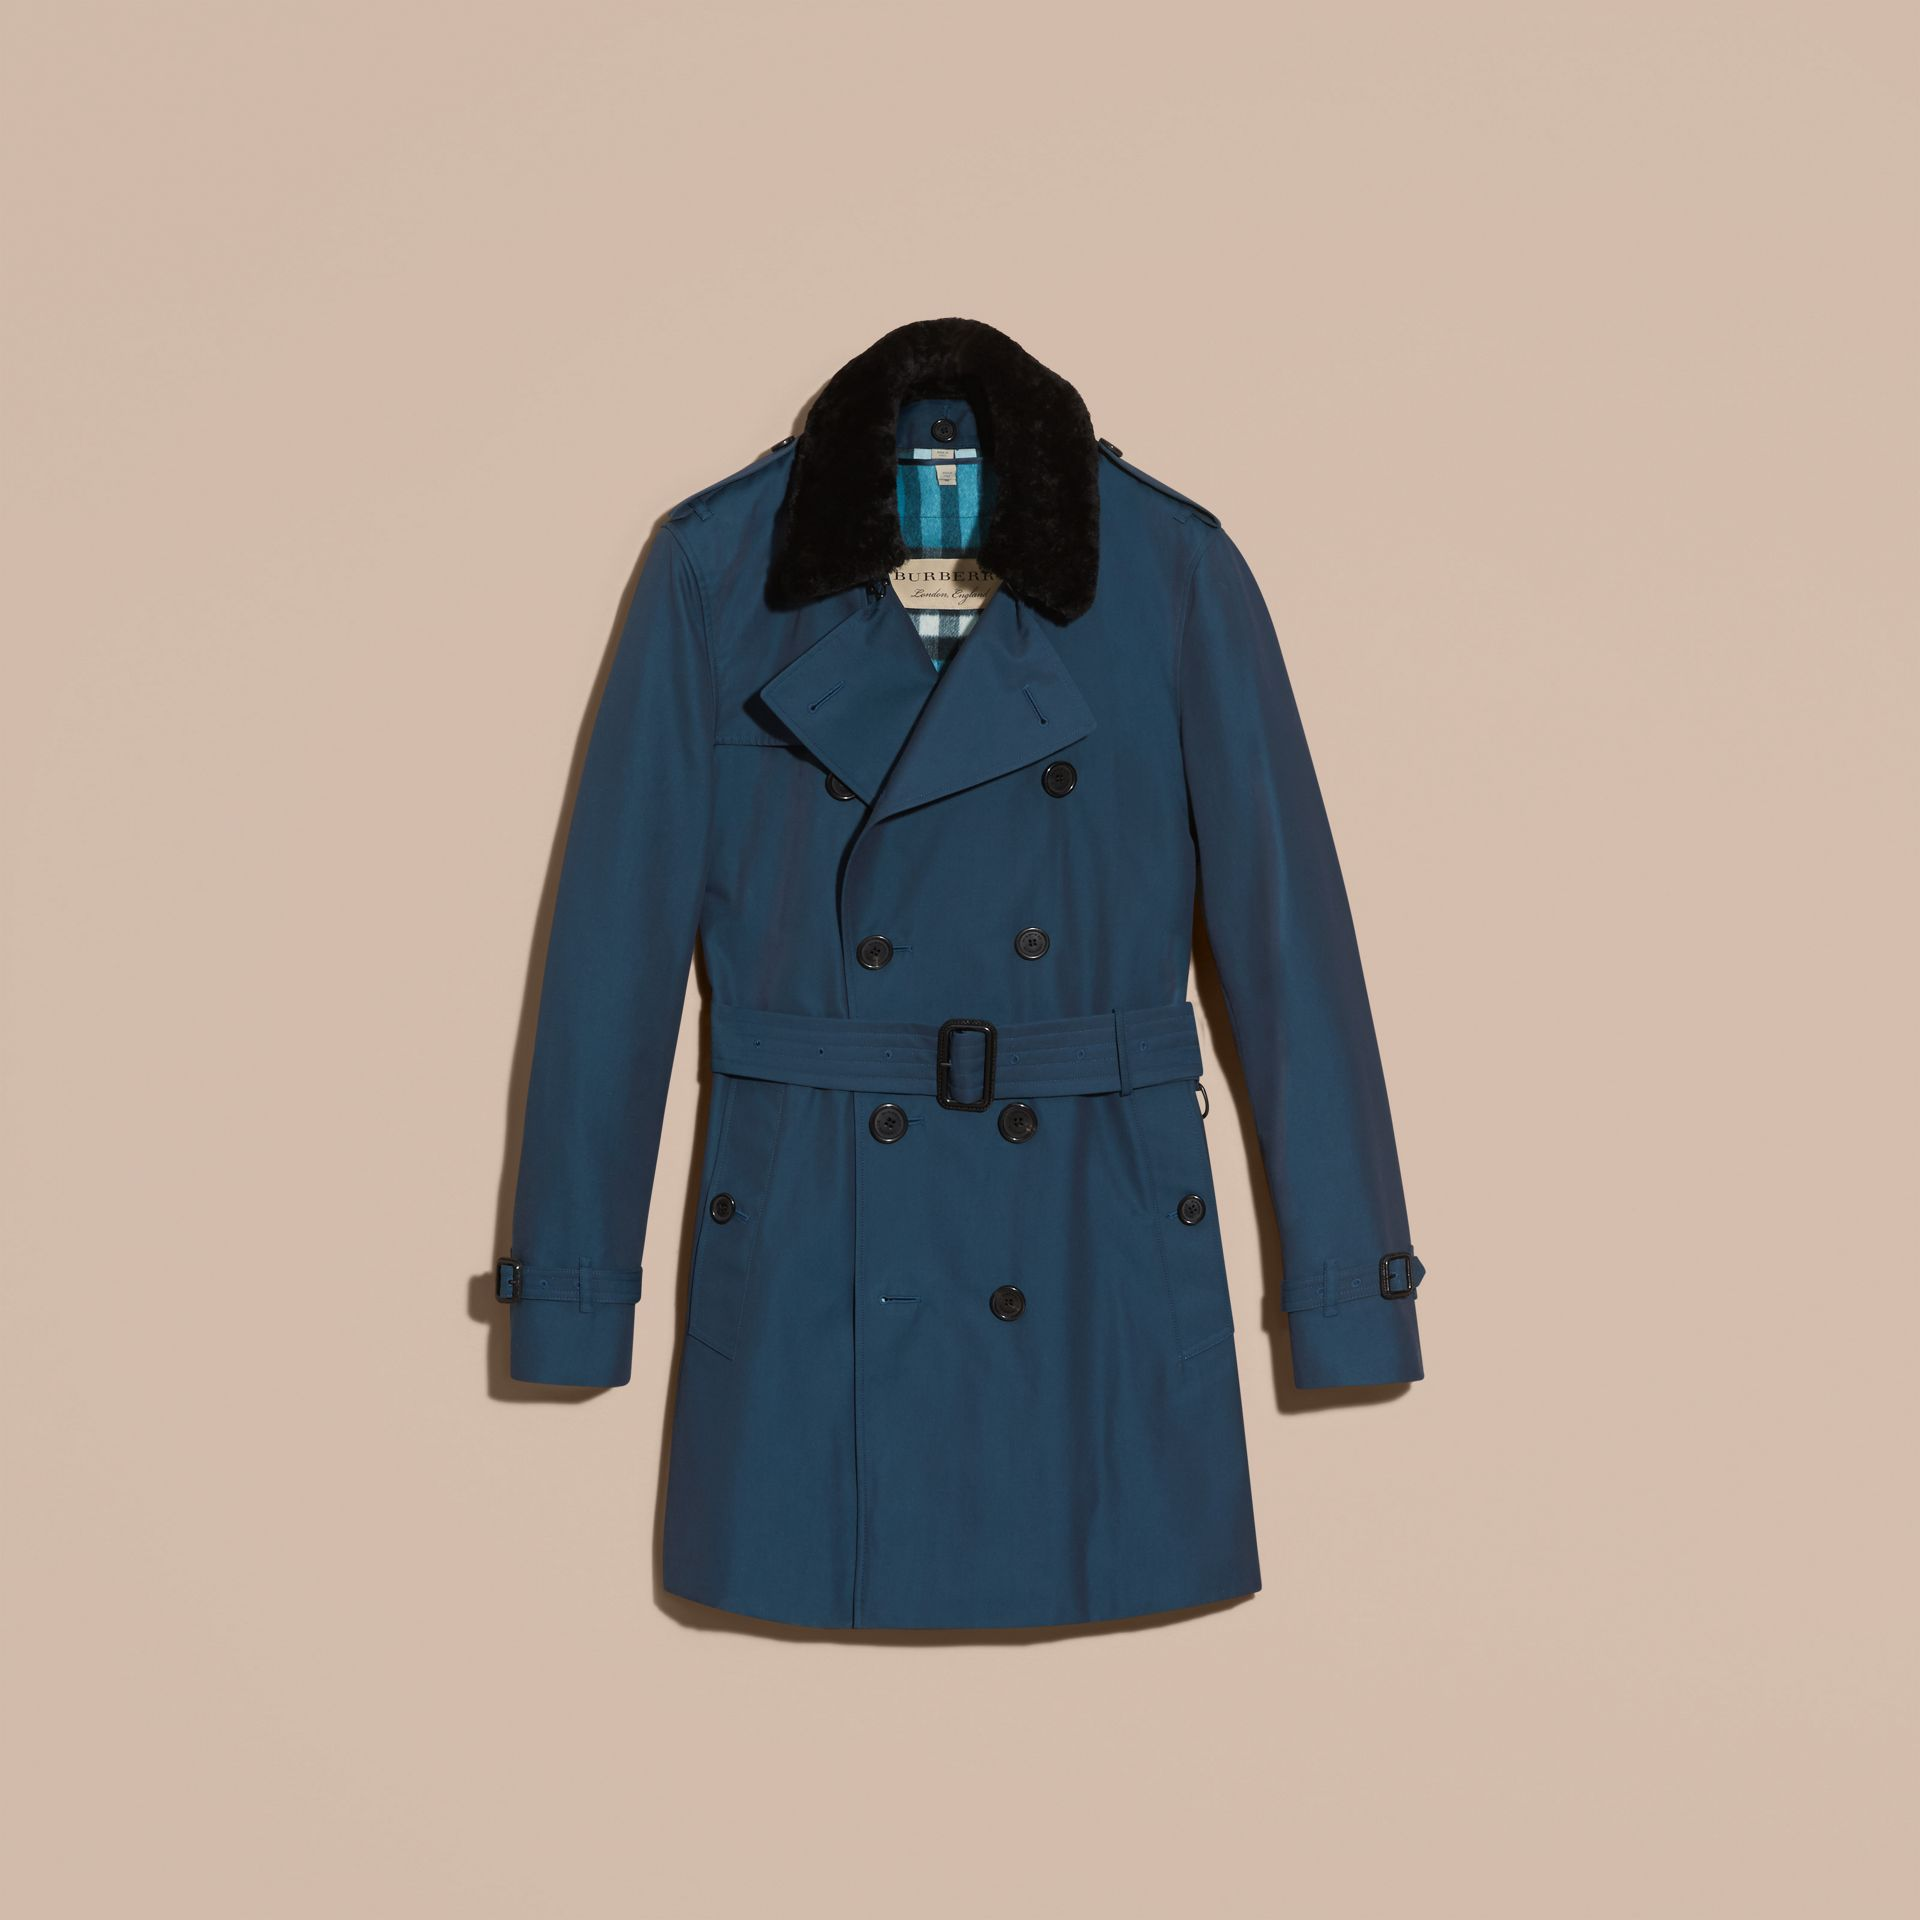 Teal blue Detachable Shearling Topcollar Cotton Gabardine Trench Coat with Warmer Teal Blue - gallery image 4